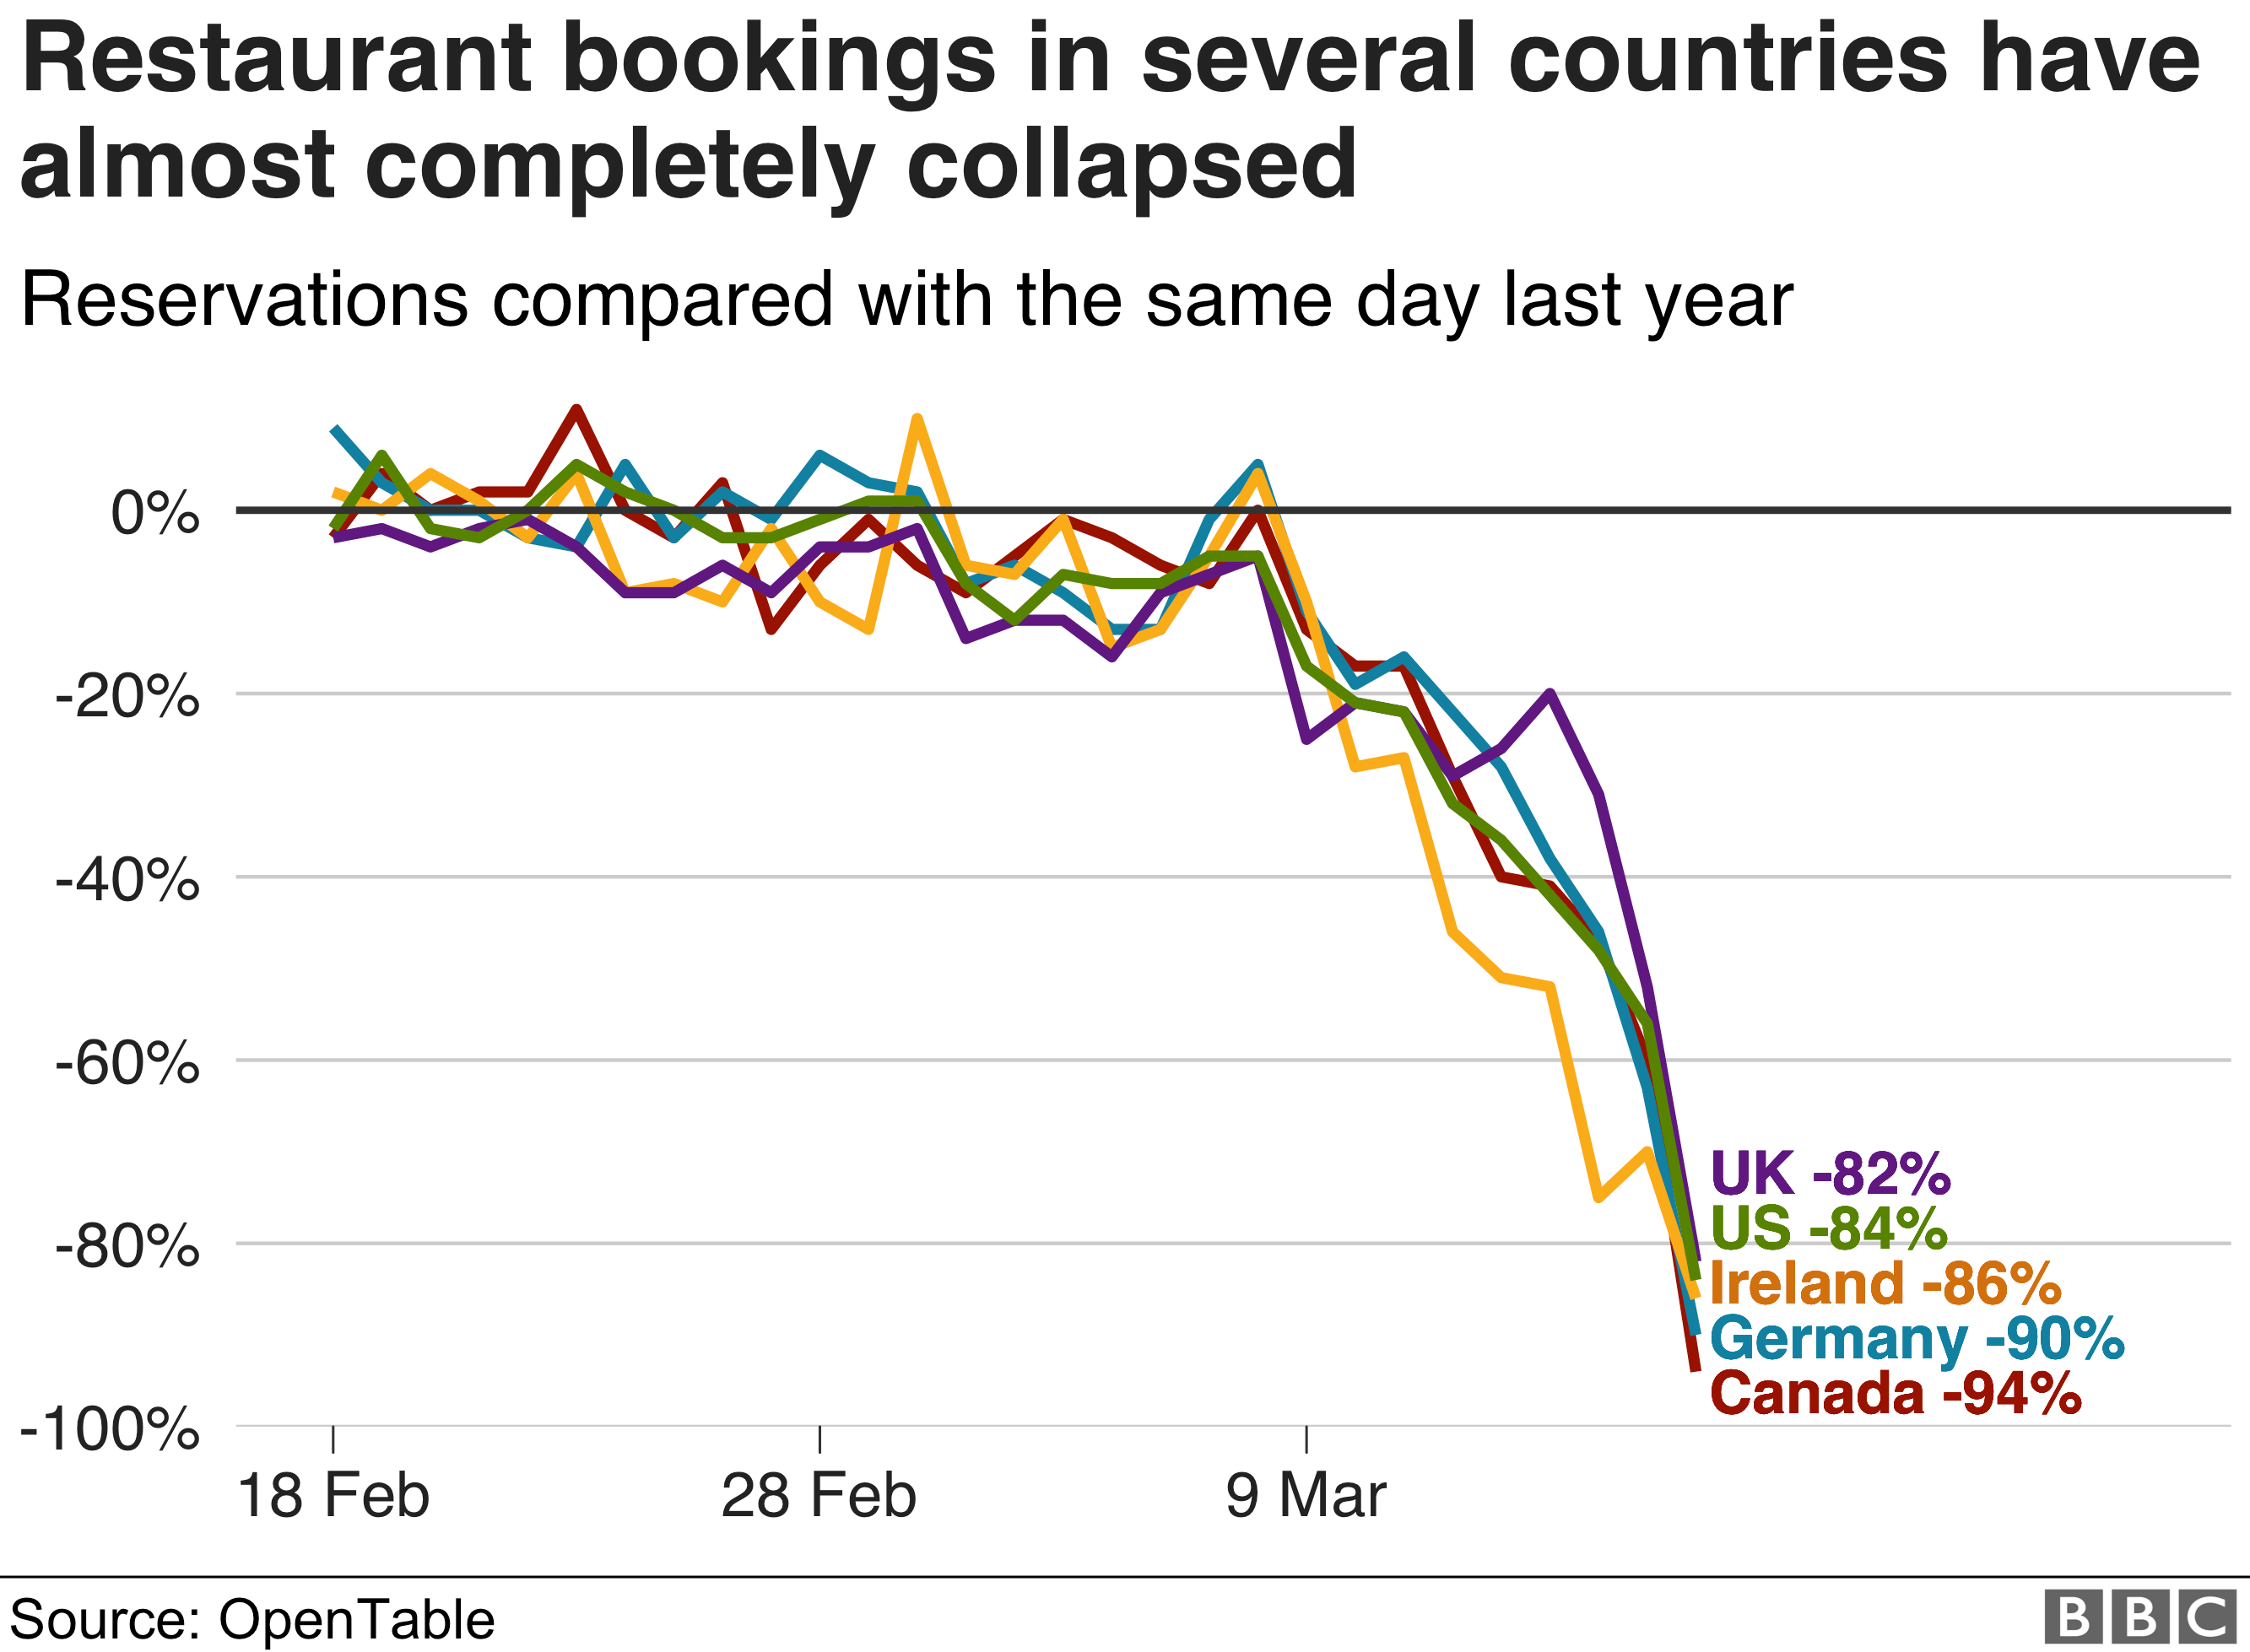 Chart showing how restaurant bookings have declined in several countries - 19 March